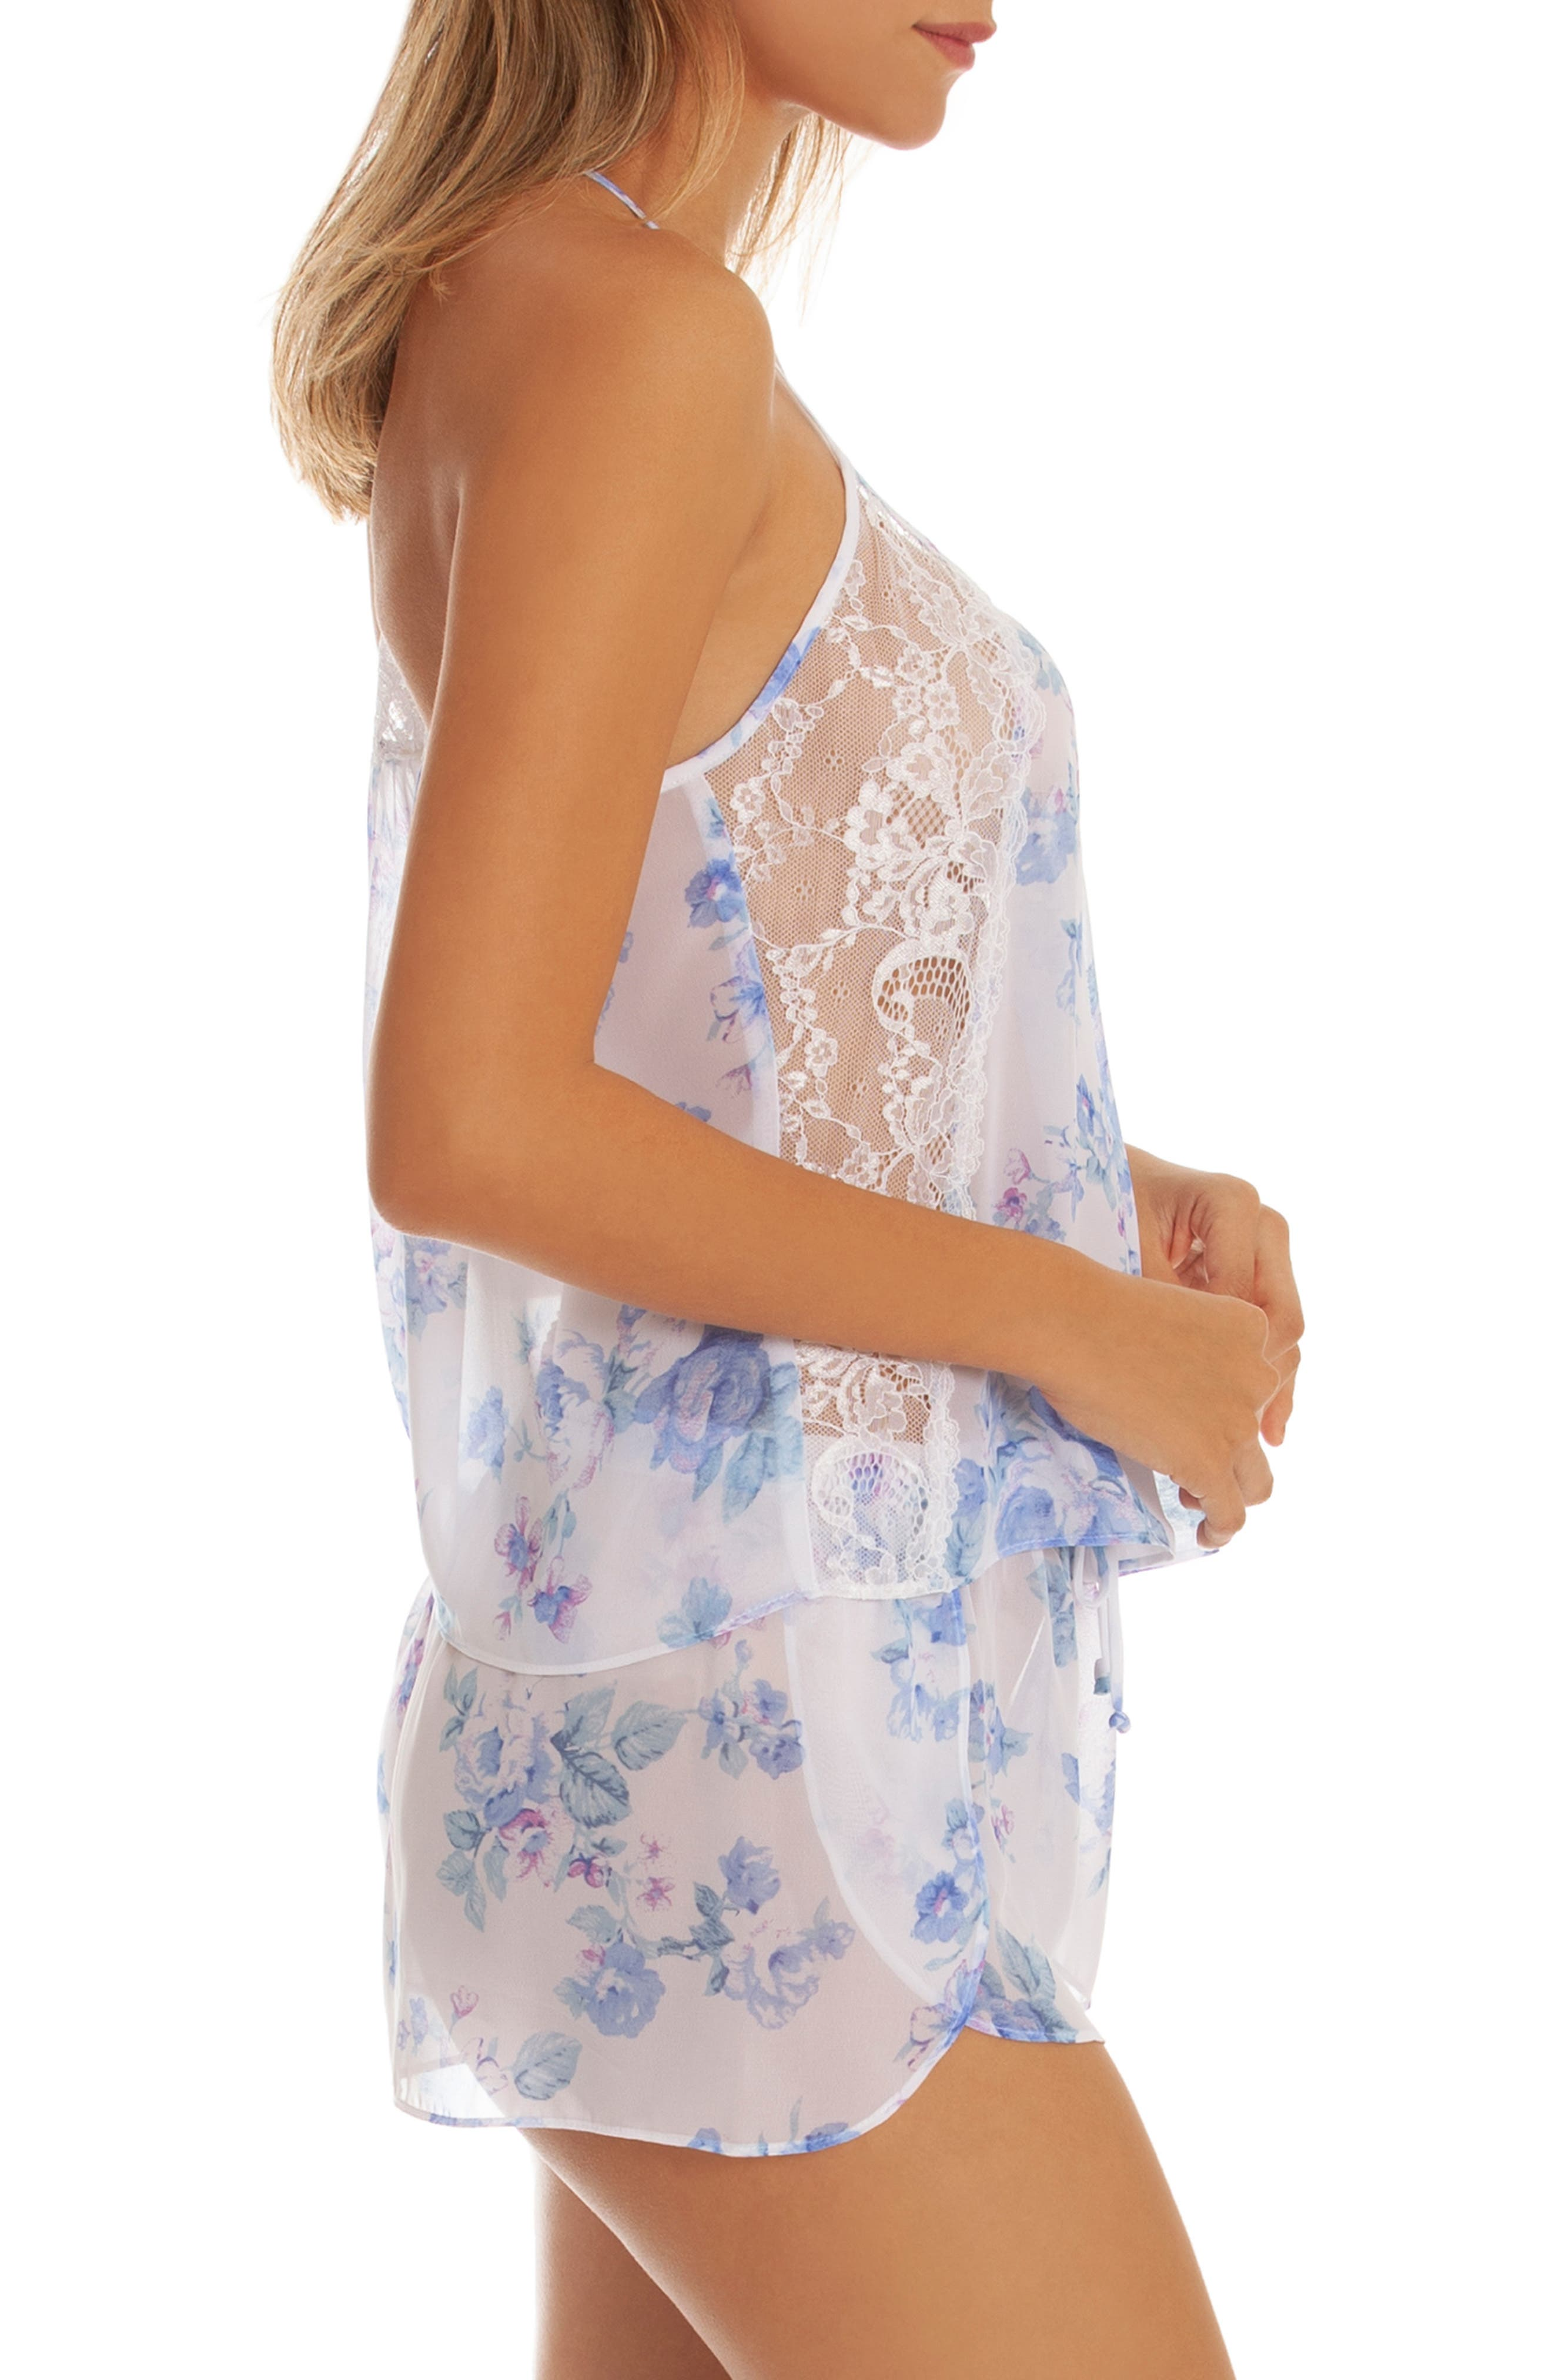 IN BLOOM BY JONQUIL, Chiffon Short Pajamas, Alternate thumbnail 3, color, BLUE/ IVORY